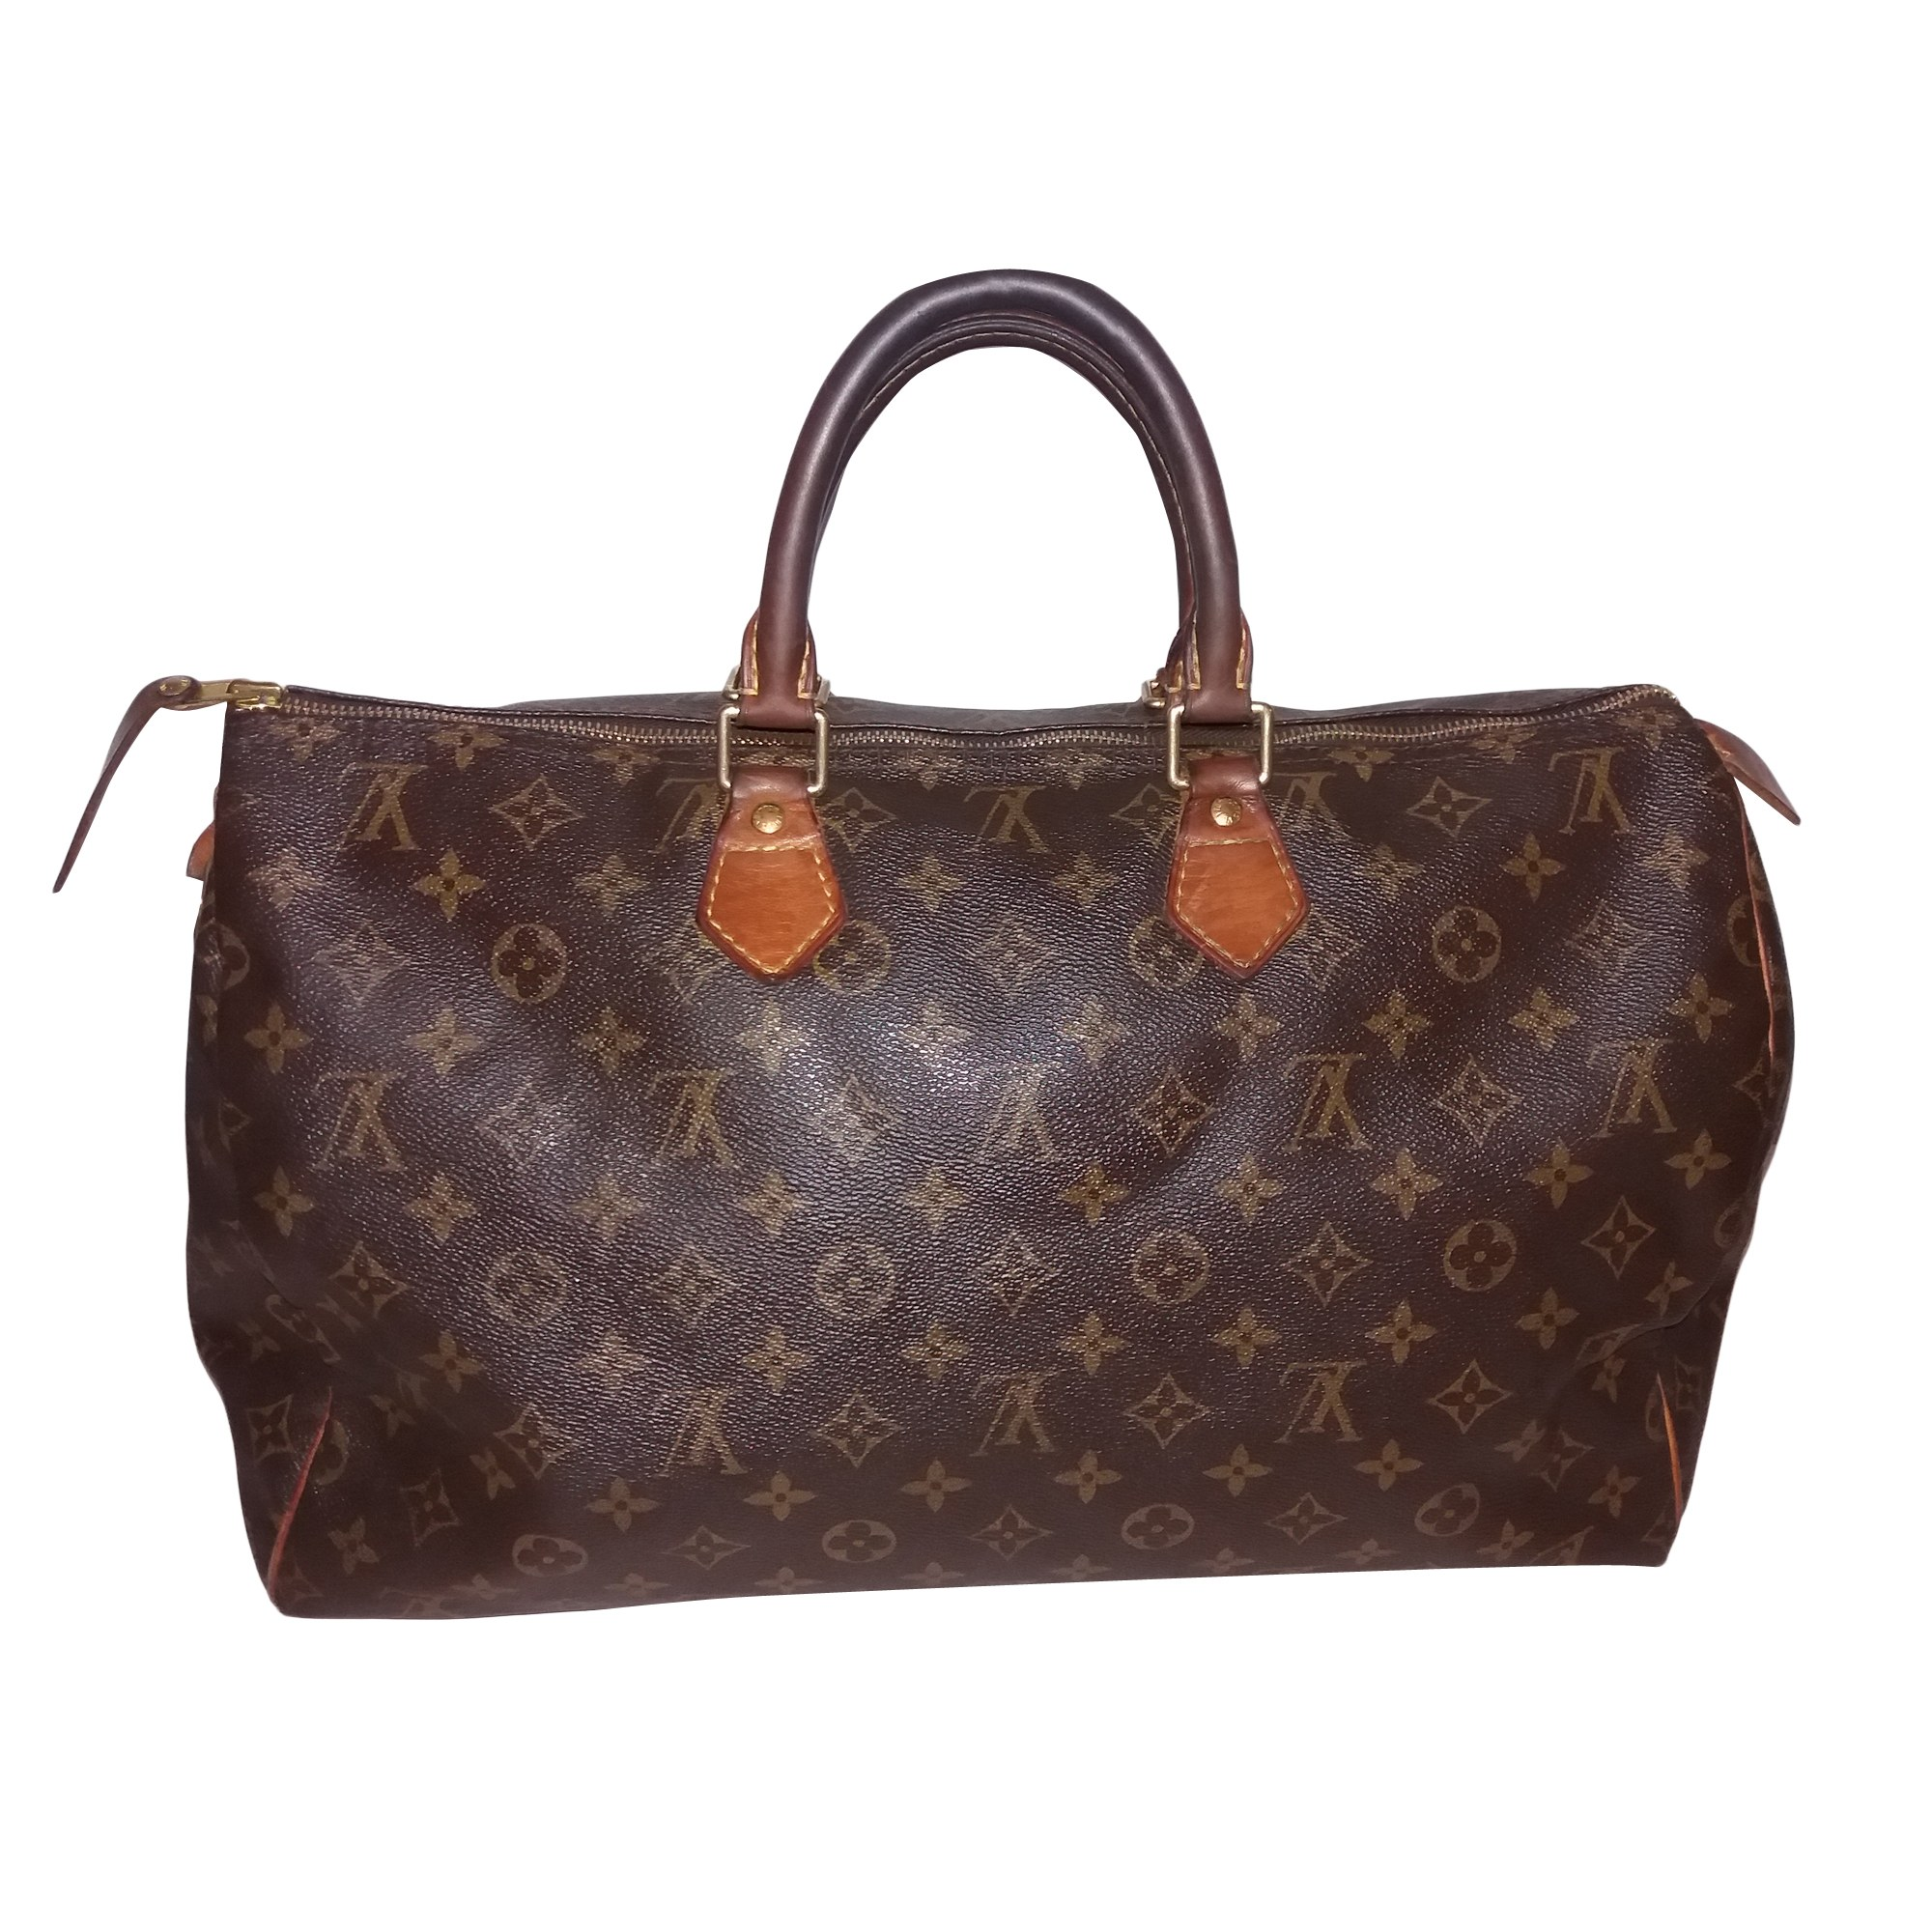 Leather Handbag LOUIS VUITTON Speedy Brown